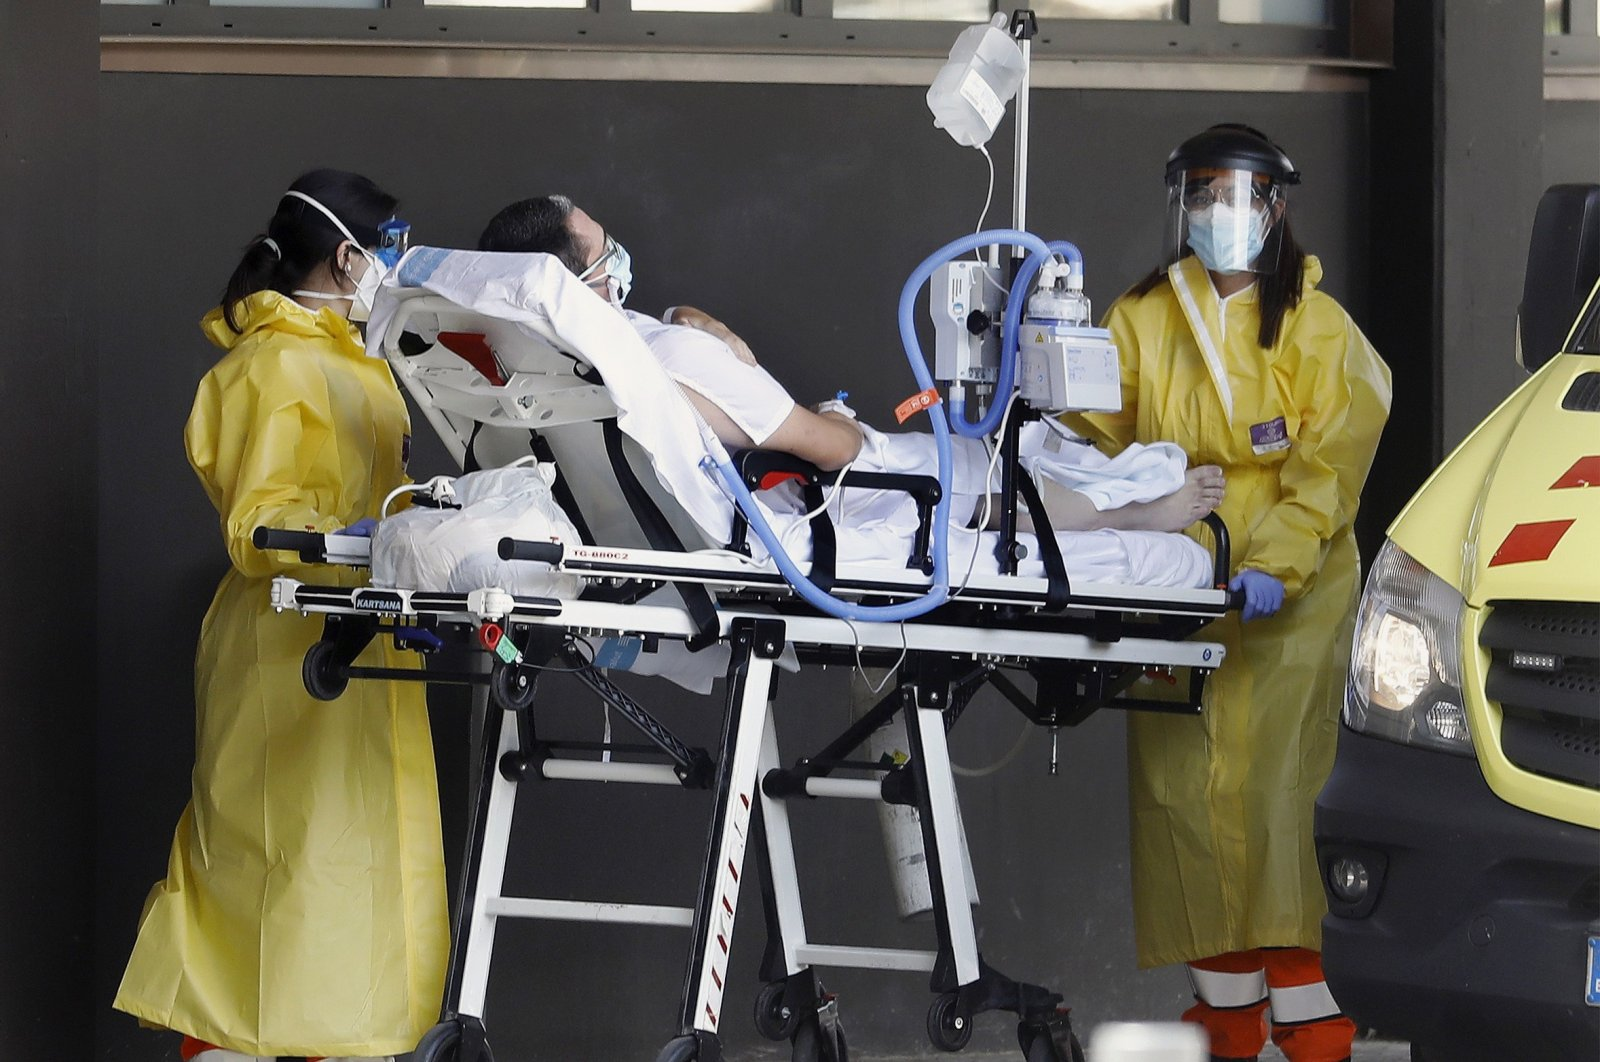 Health workers carry a COVID-19 patient to a hospital in Barcelona, Spain, July 11, 2021. (EPA Photo)